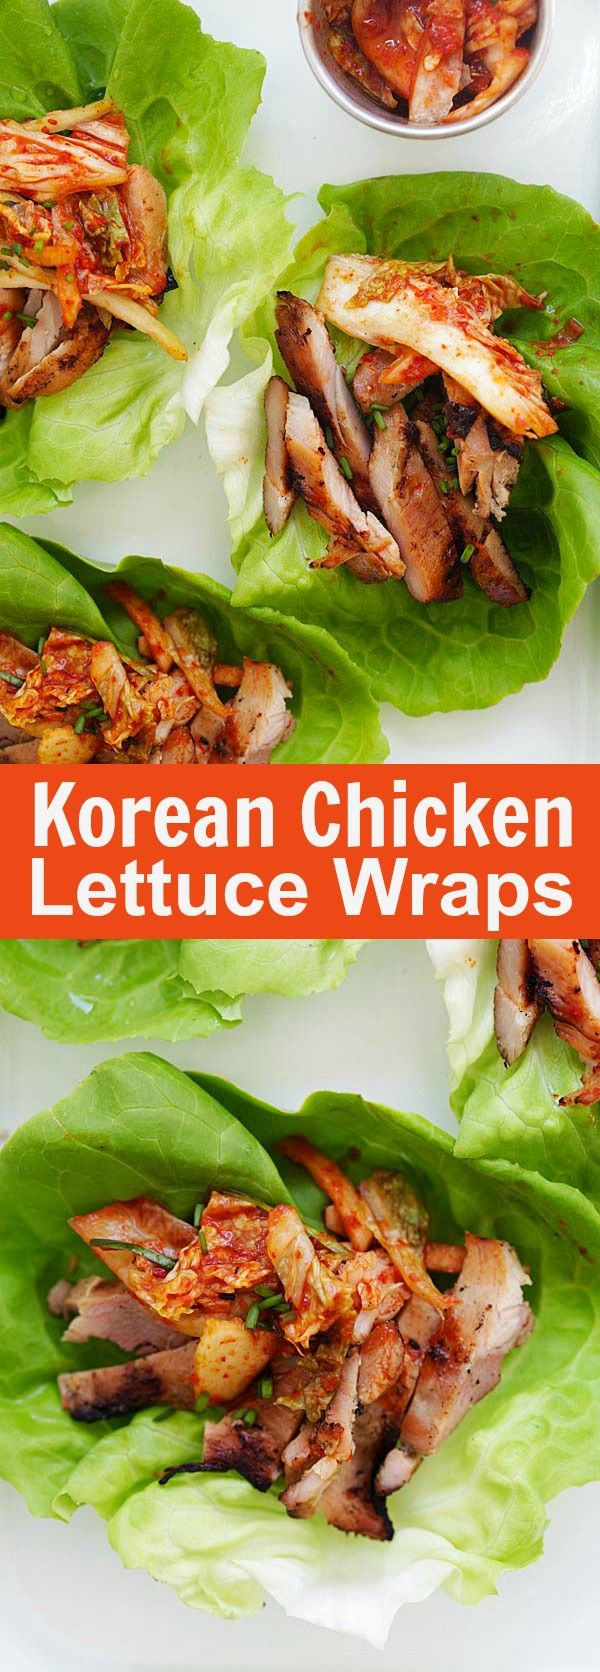 Korean BBQ Chicken Kimchi Lettuce Wraps – refreshing lettuce wraps with spicy Korean grilled chicken and kimchi. So delicious you'll want more | rasamalaysia.com